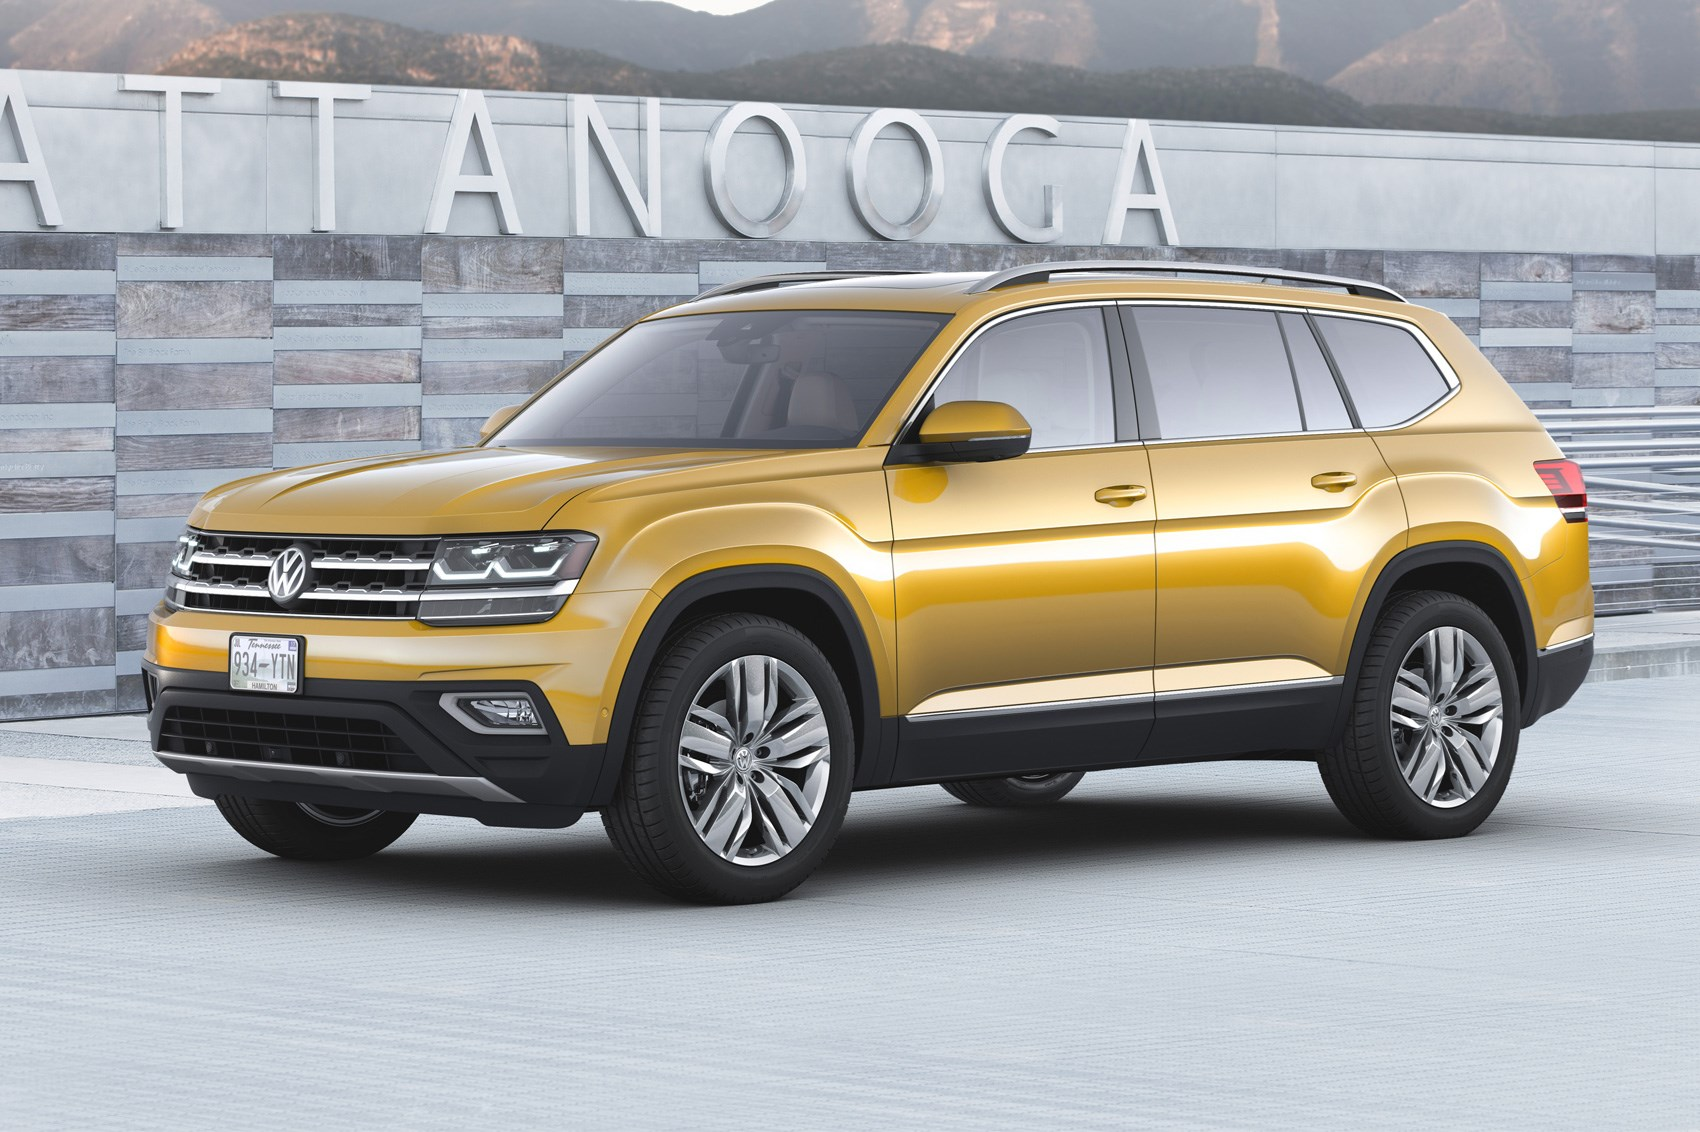 seven seat vw atlas suv unveiled in the us by car magazine. Black Bedroom Furniture Sets. Home Design Ideas